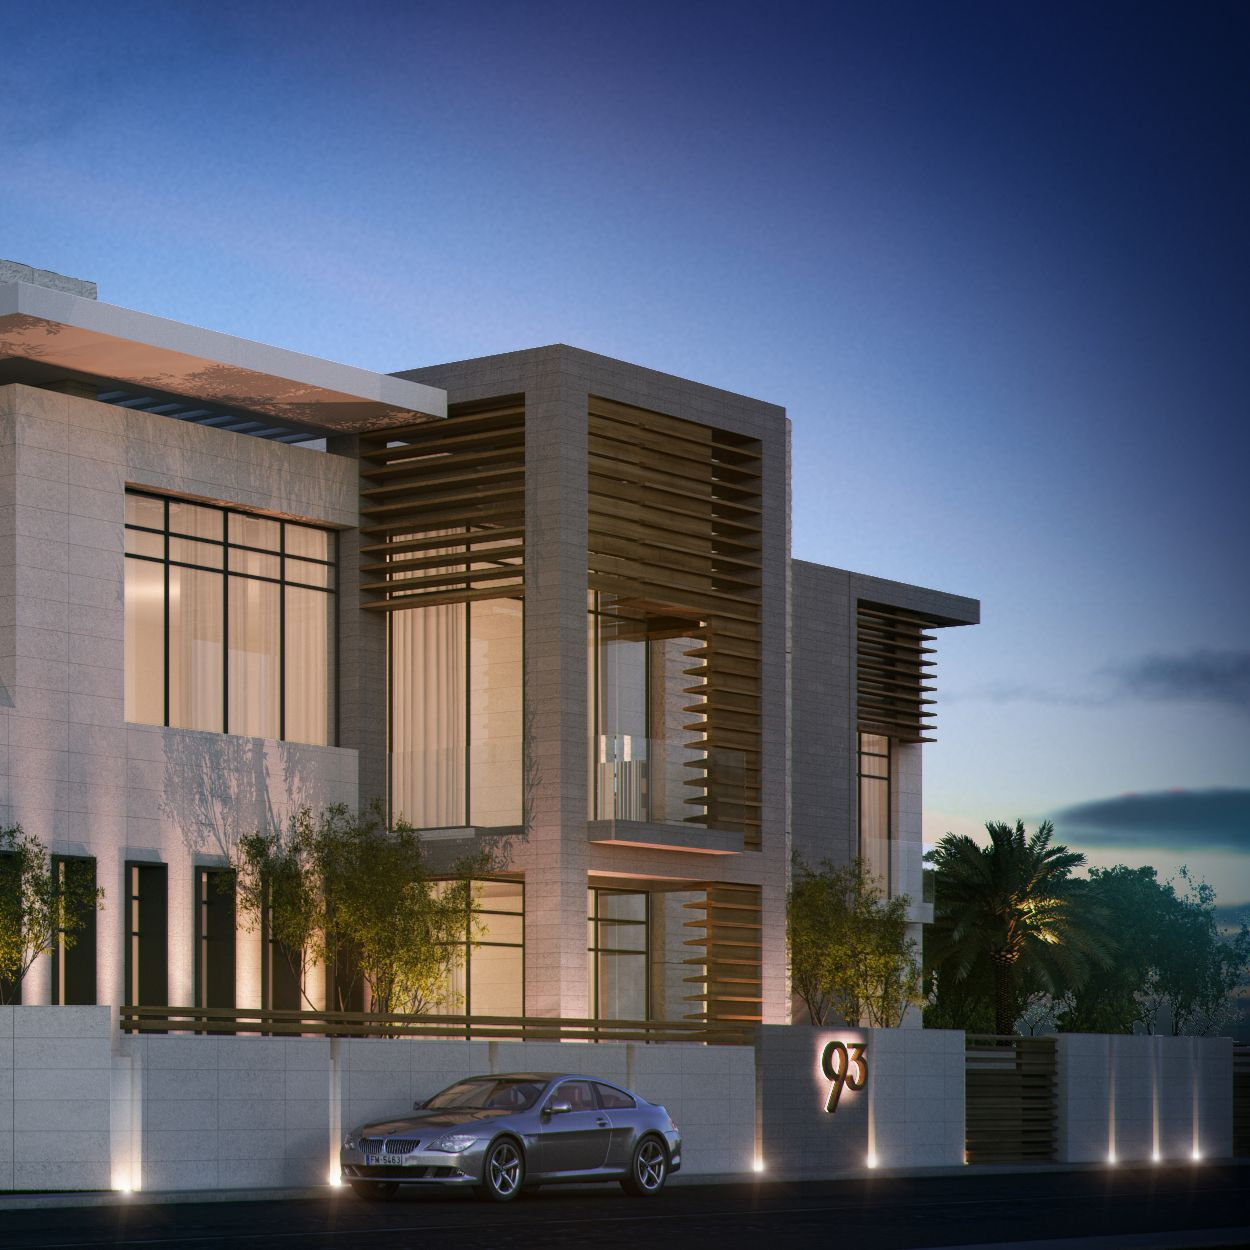 Uae ajman private villa sarah sadeq architects sarah for Modern house uae